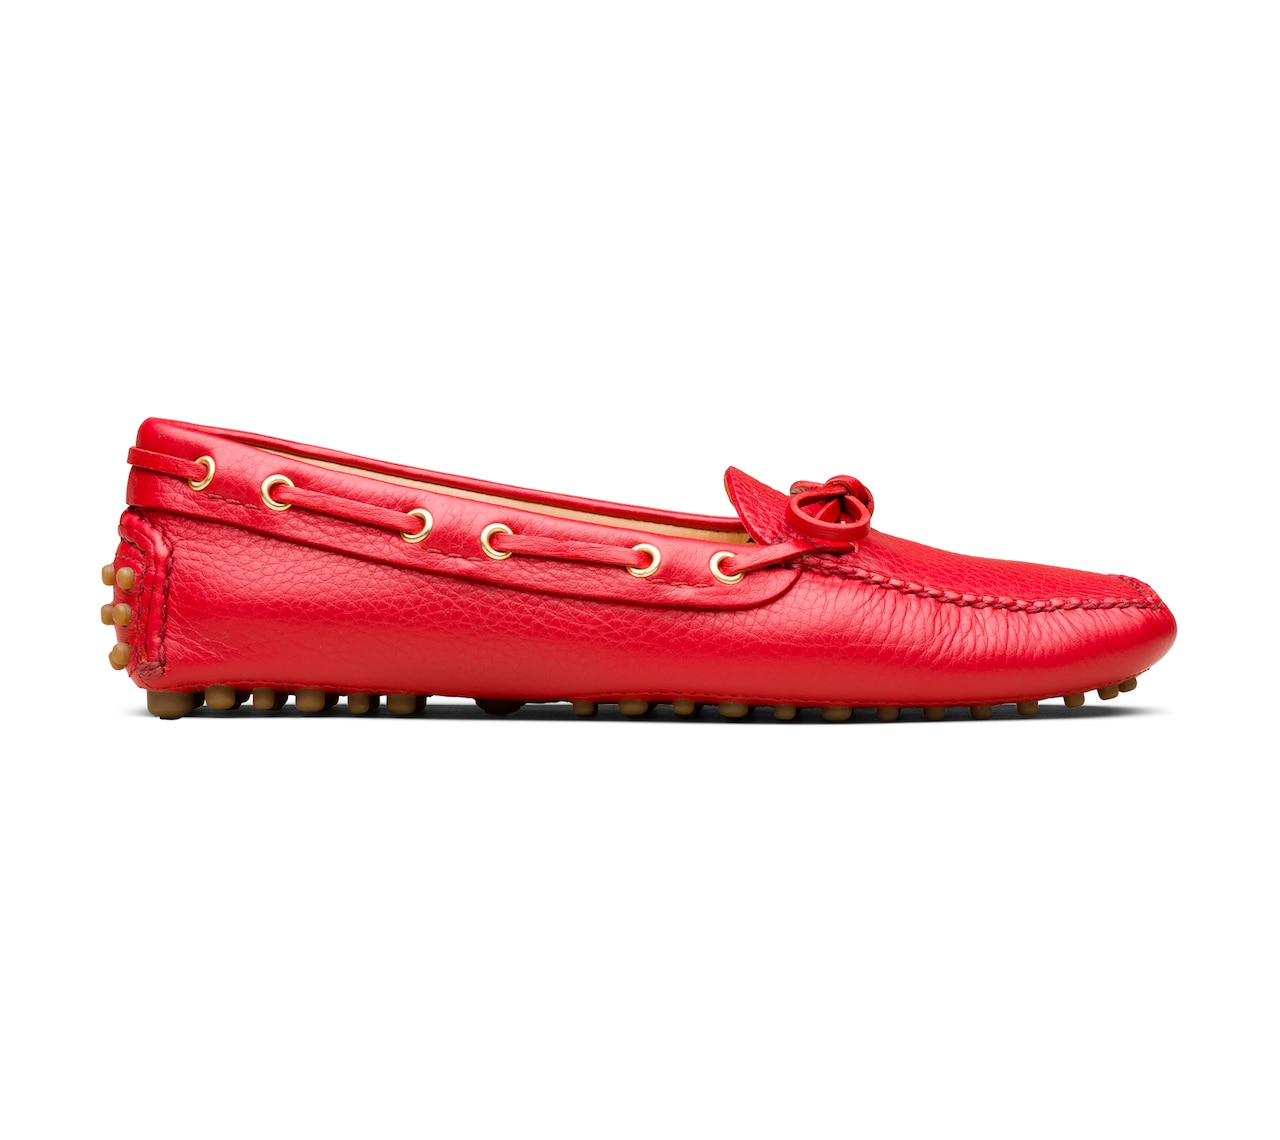 DRIVING SHOES DAINO ROSSO